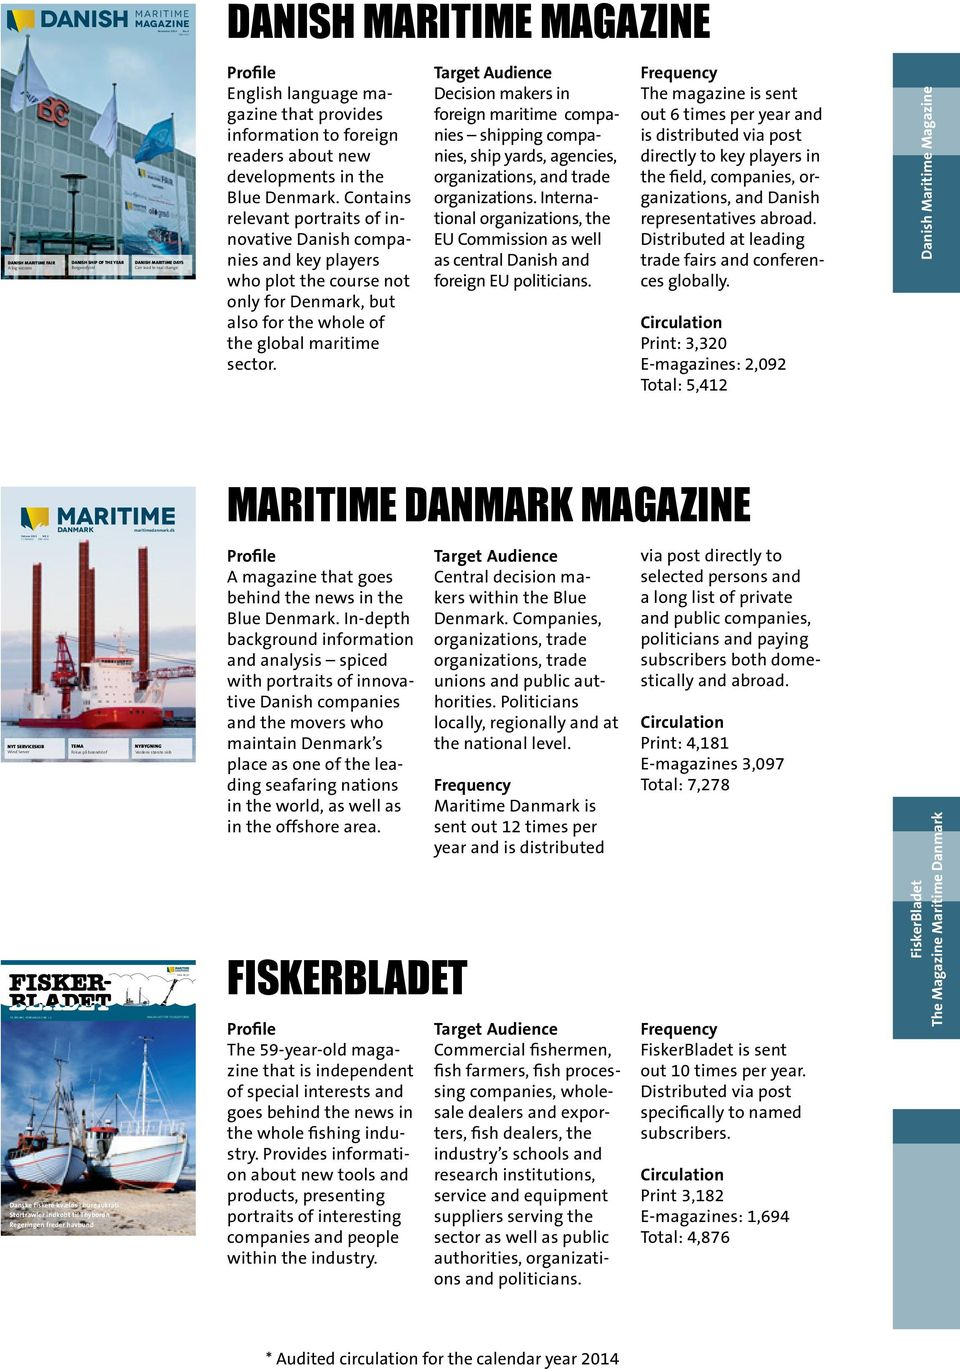 provides information to foreign readers about new developments in the Blue Denmark.